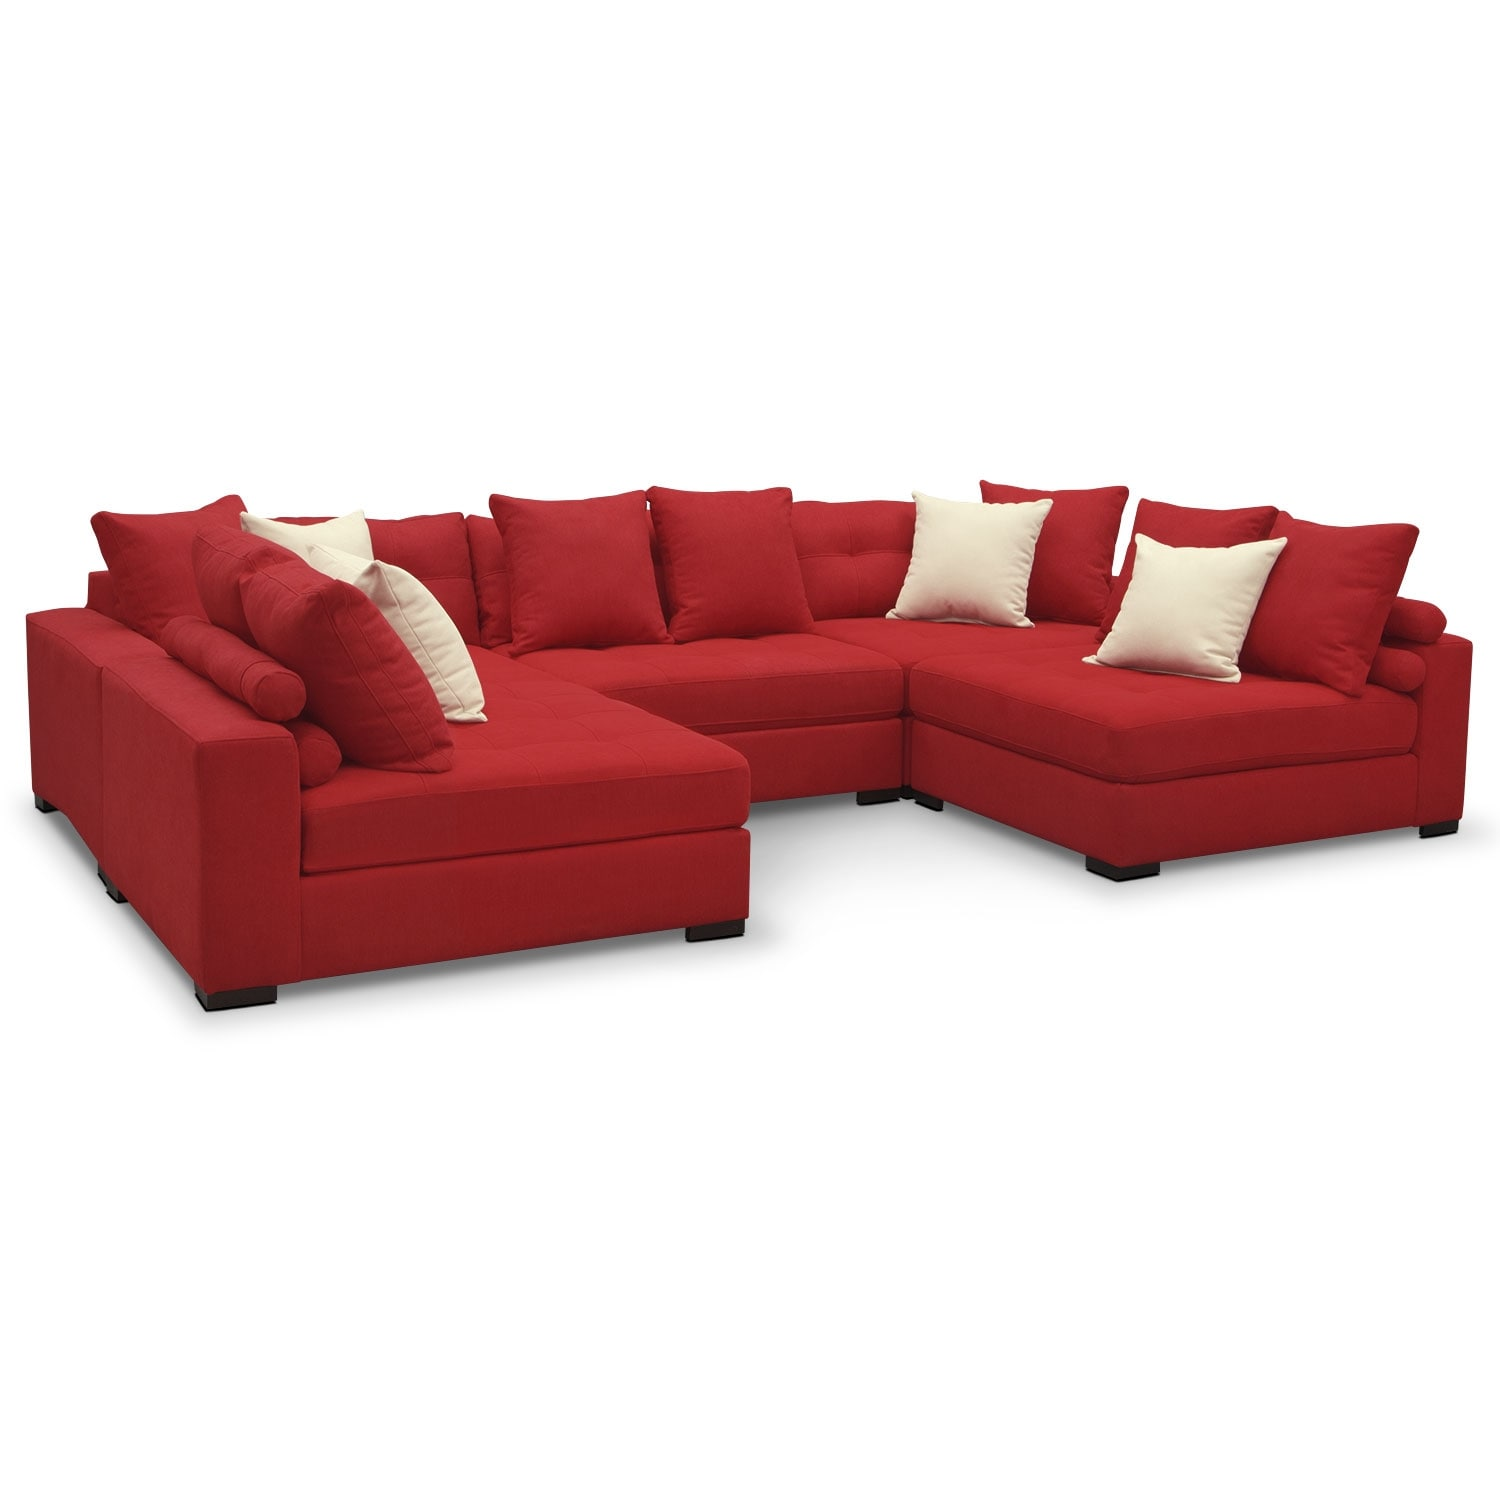 Venti 5-Piece Sectional - Red